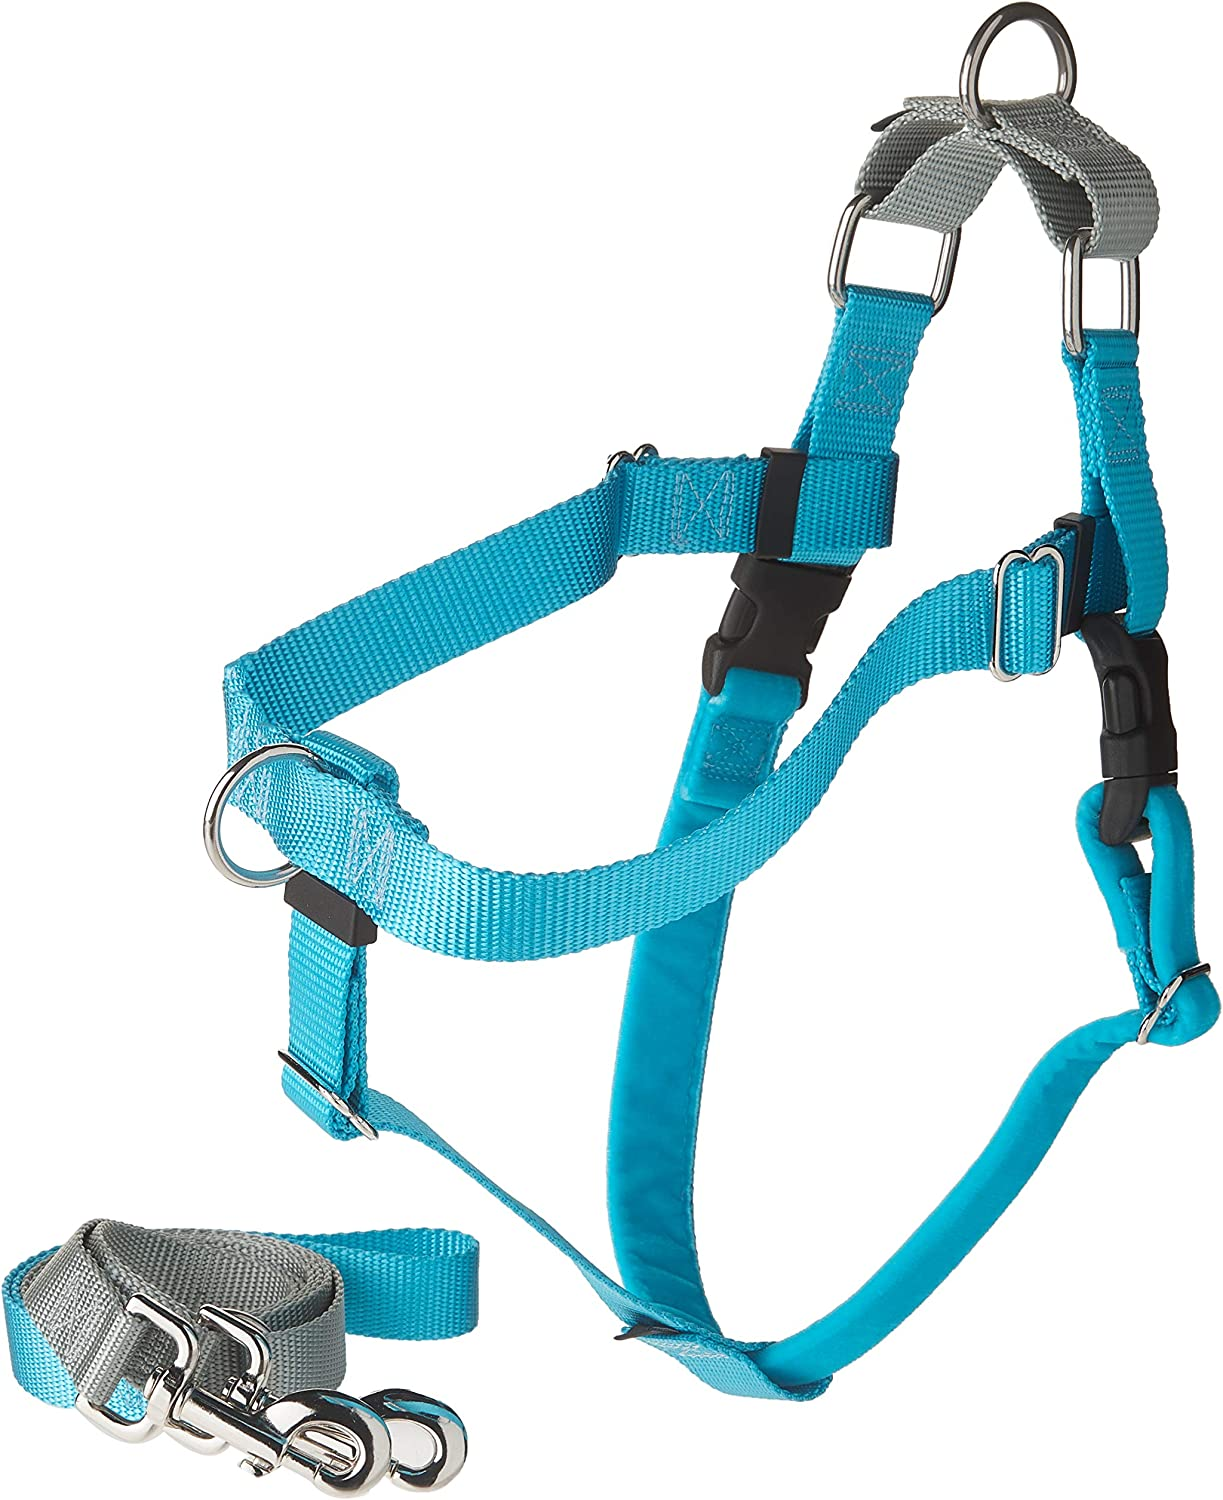 2 Hounds Design Freedom No-Pull Dog Harness with Leash, Large 81zcDyP82BuL